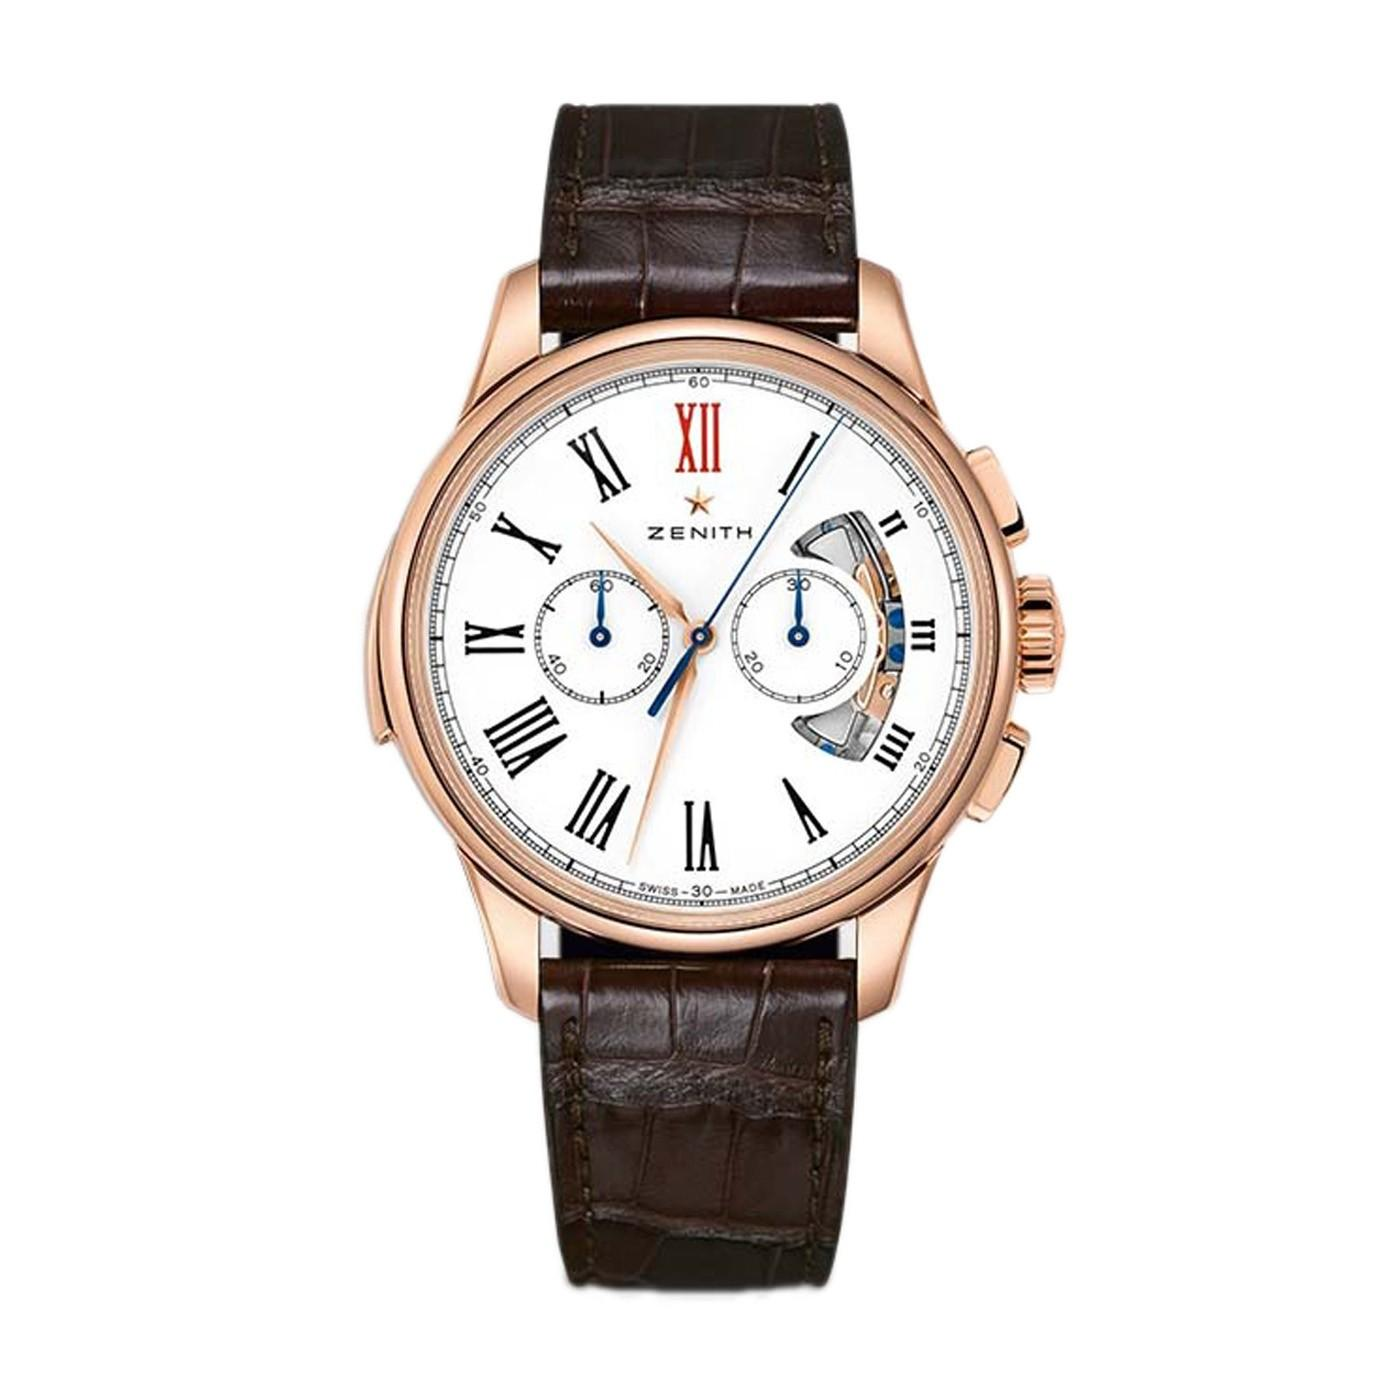 Zenith Academy Repetition Minutes Chronograph in Rose Gold